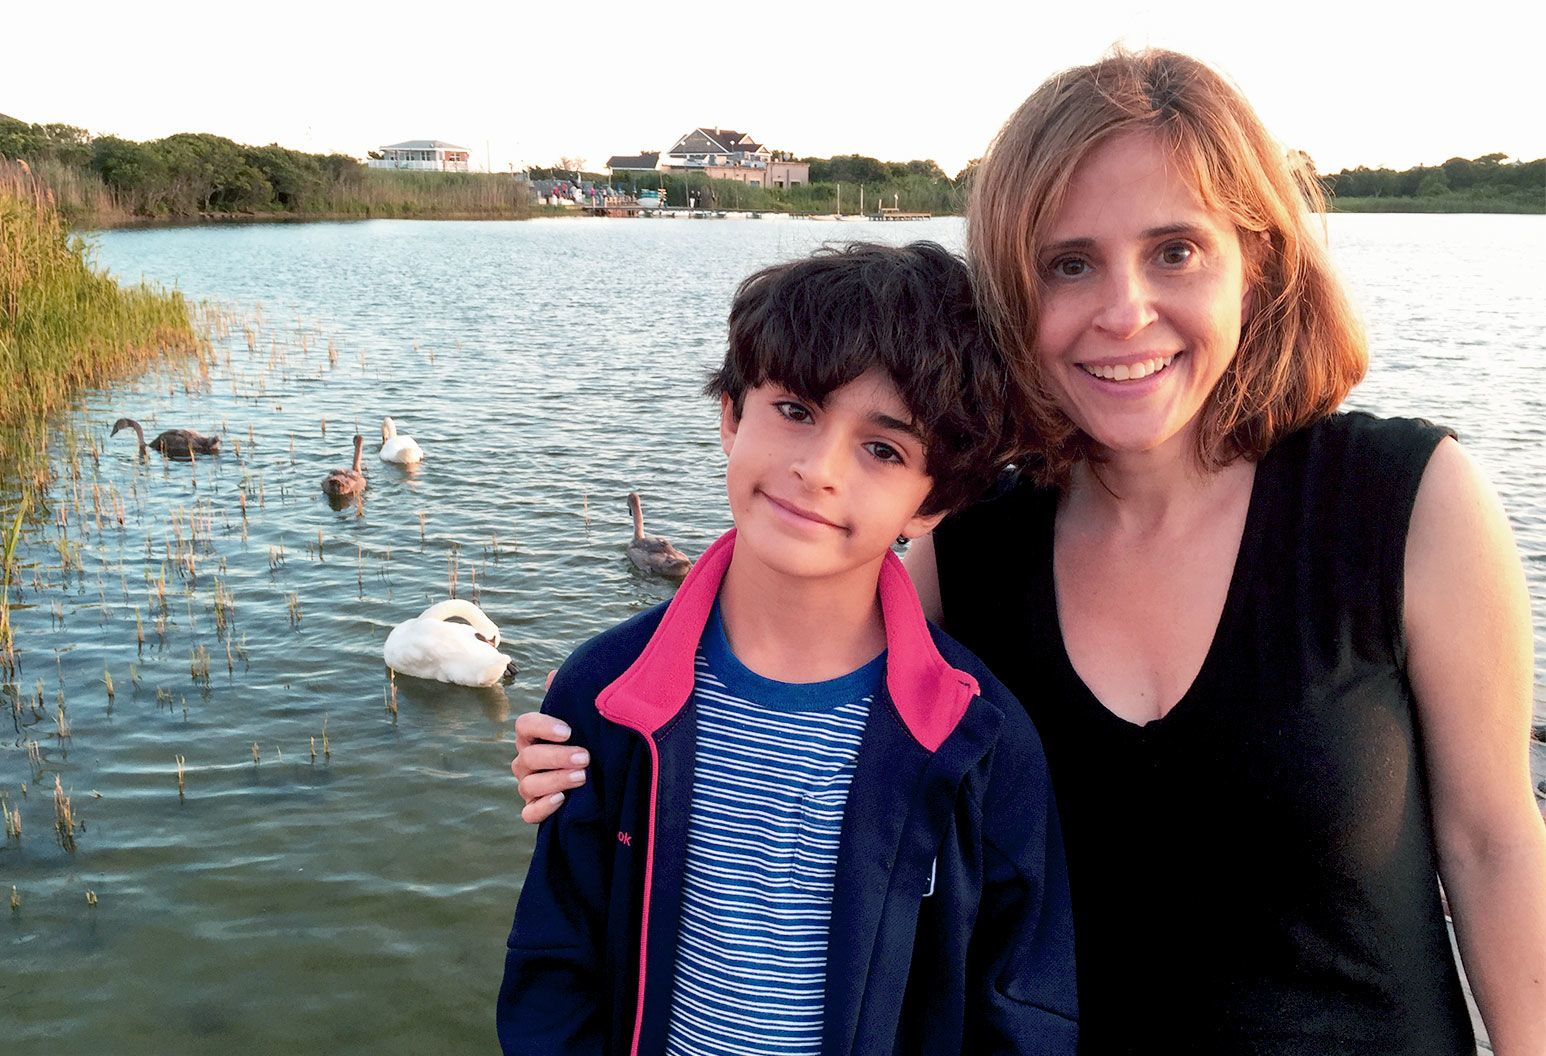 a young boy with curly black hair, a striped shirt displays a faint smile as he stands in front of a lake with an older woman with her hand on his shoulder. She has shoulder length auburn hair, and wears a black top. In the lake are geese treading in the